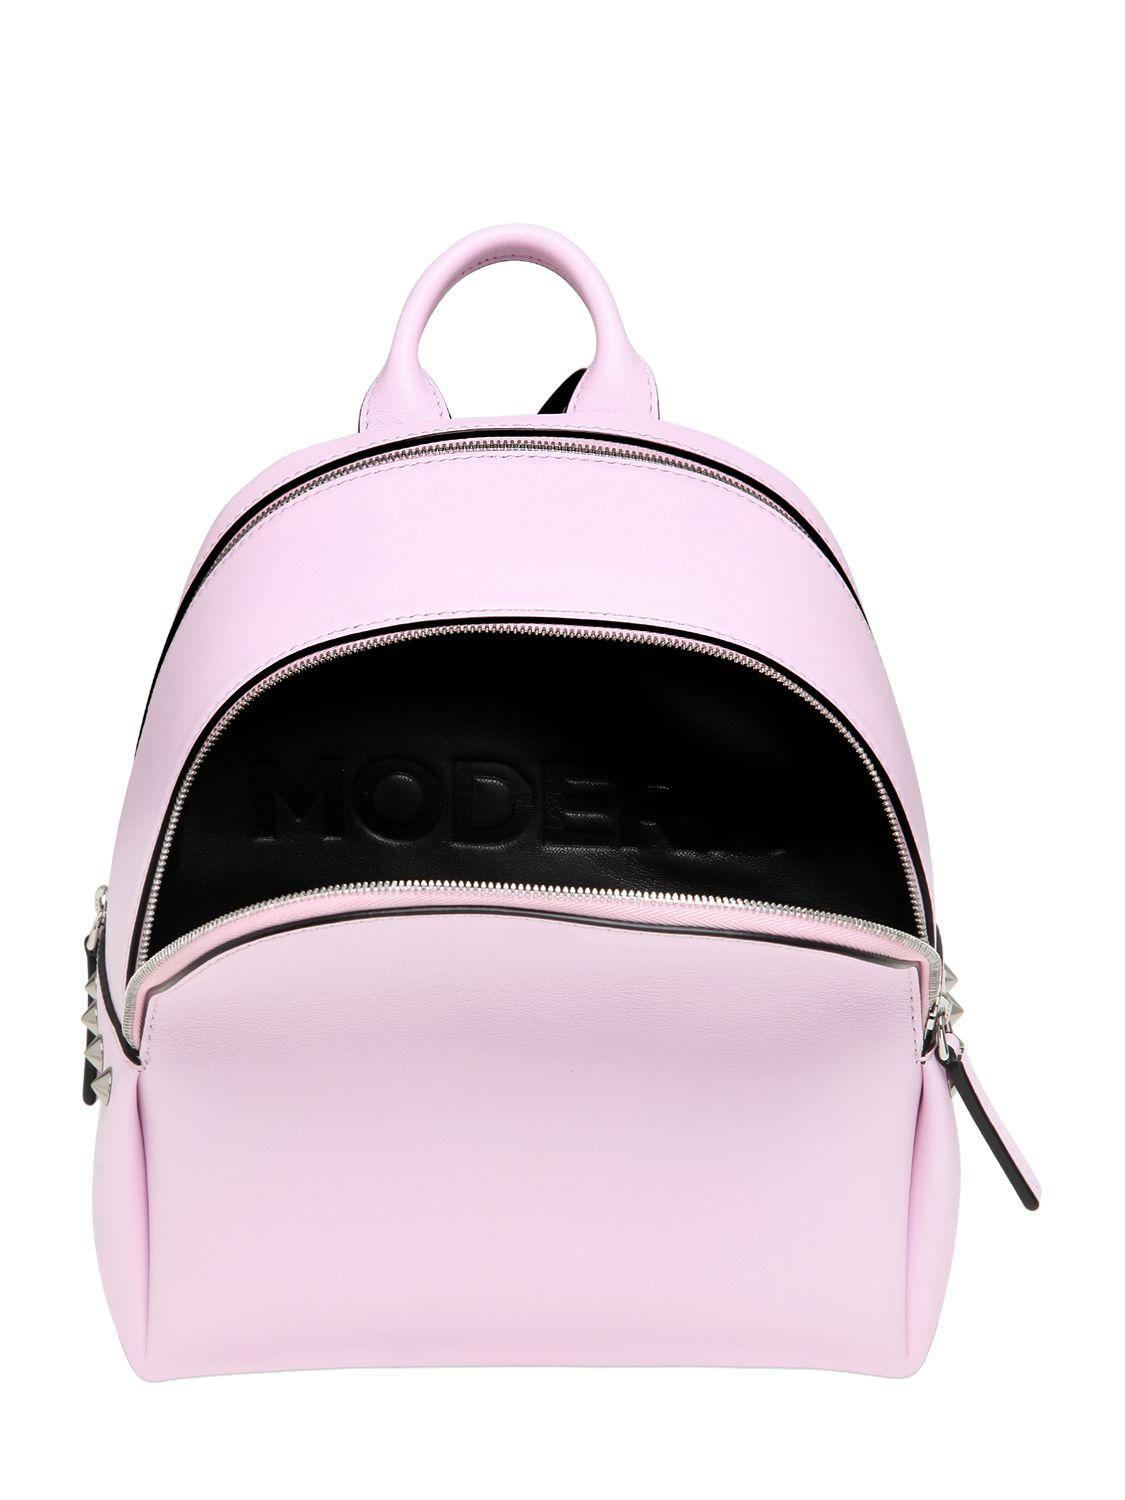 Lyst Mcm Mini Leather Backpack In Pink